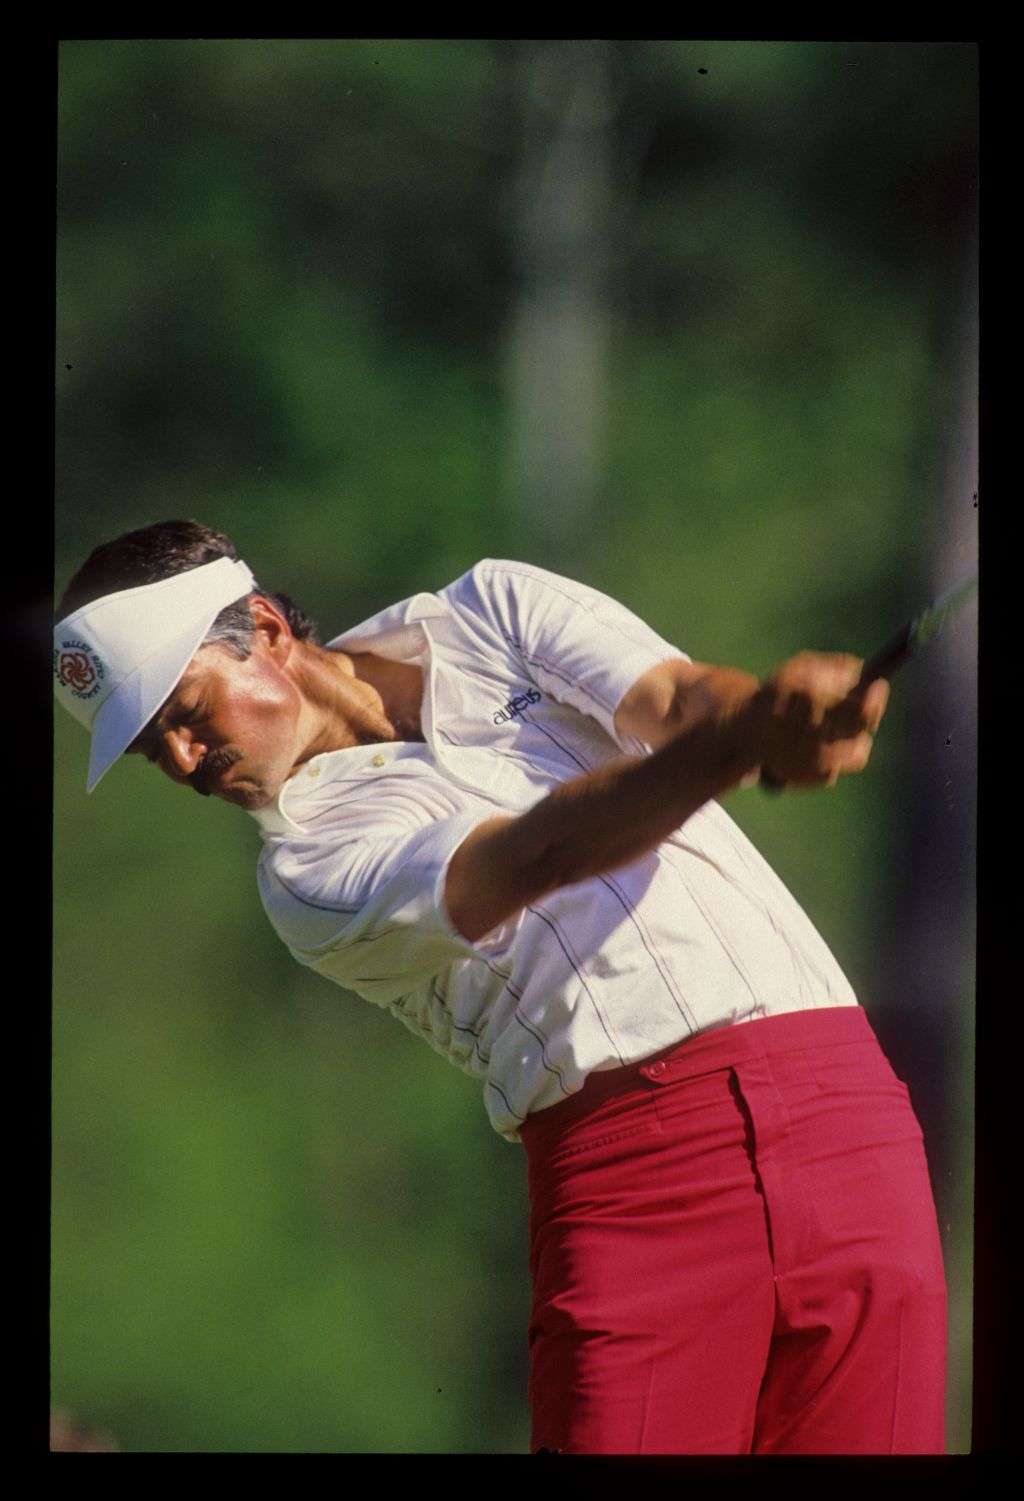 Scott Simpson powering through a drive during the 1987 Masters